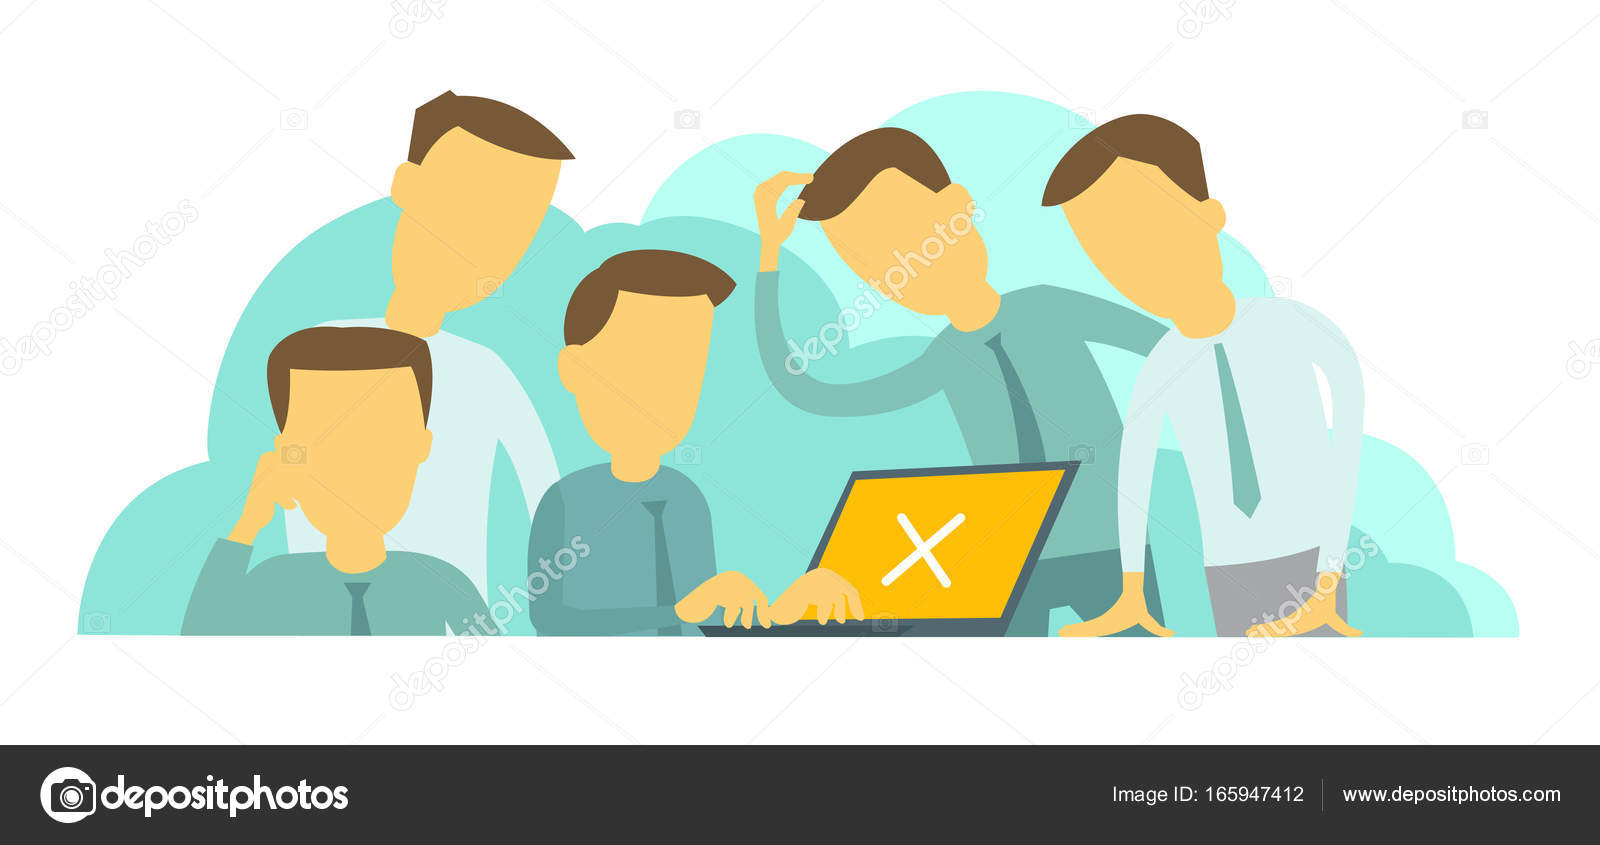 difficult situation at work company of five people teamwork programmer